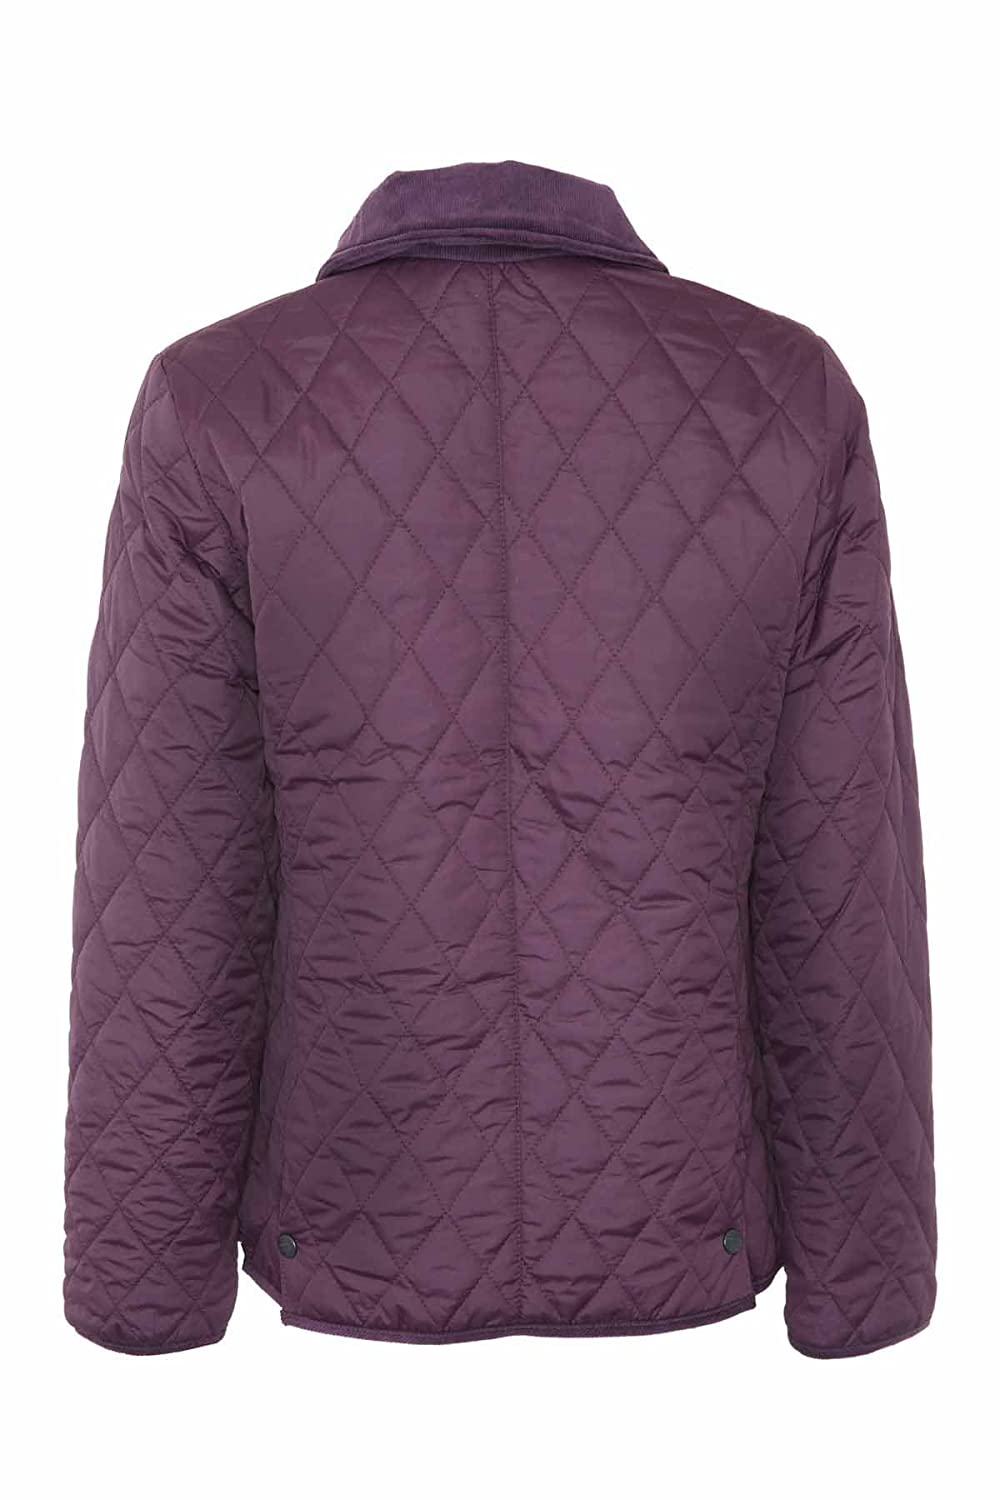 a7b777020ce Amazon.com: Champion Women's Country Estate ZipPEd & Studded Quilted Short  Winter Coat: Clothing